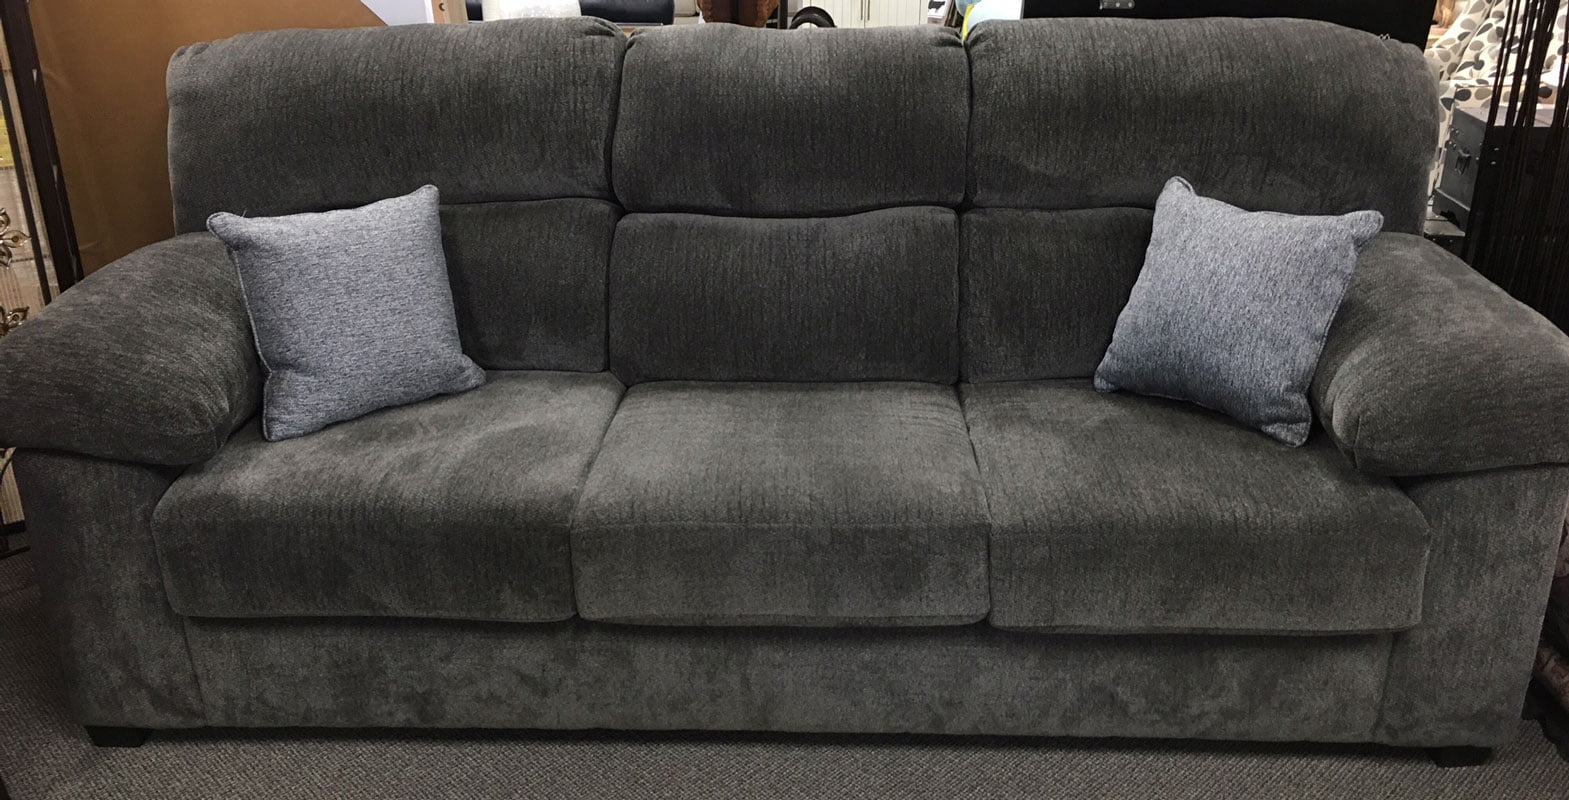 Sofas Furniture Stores Barrie